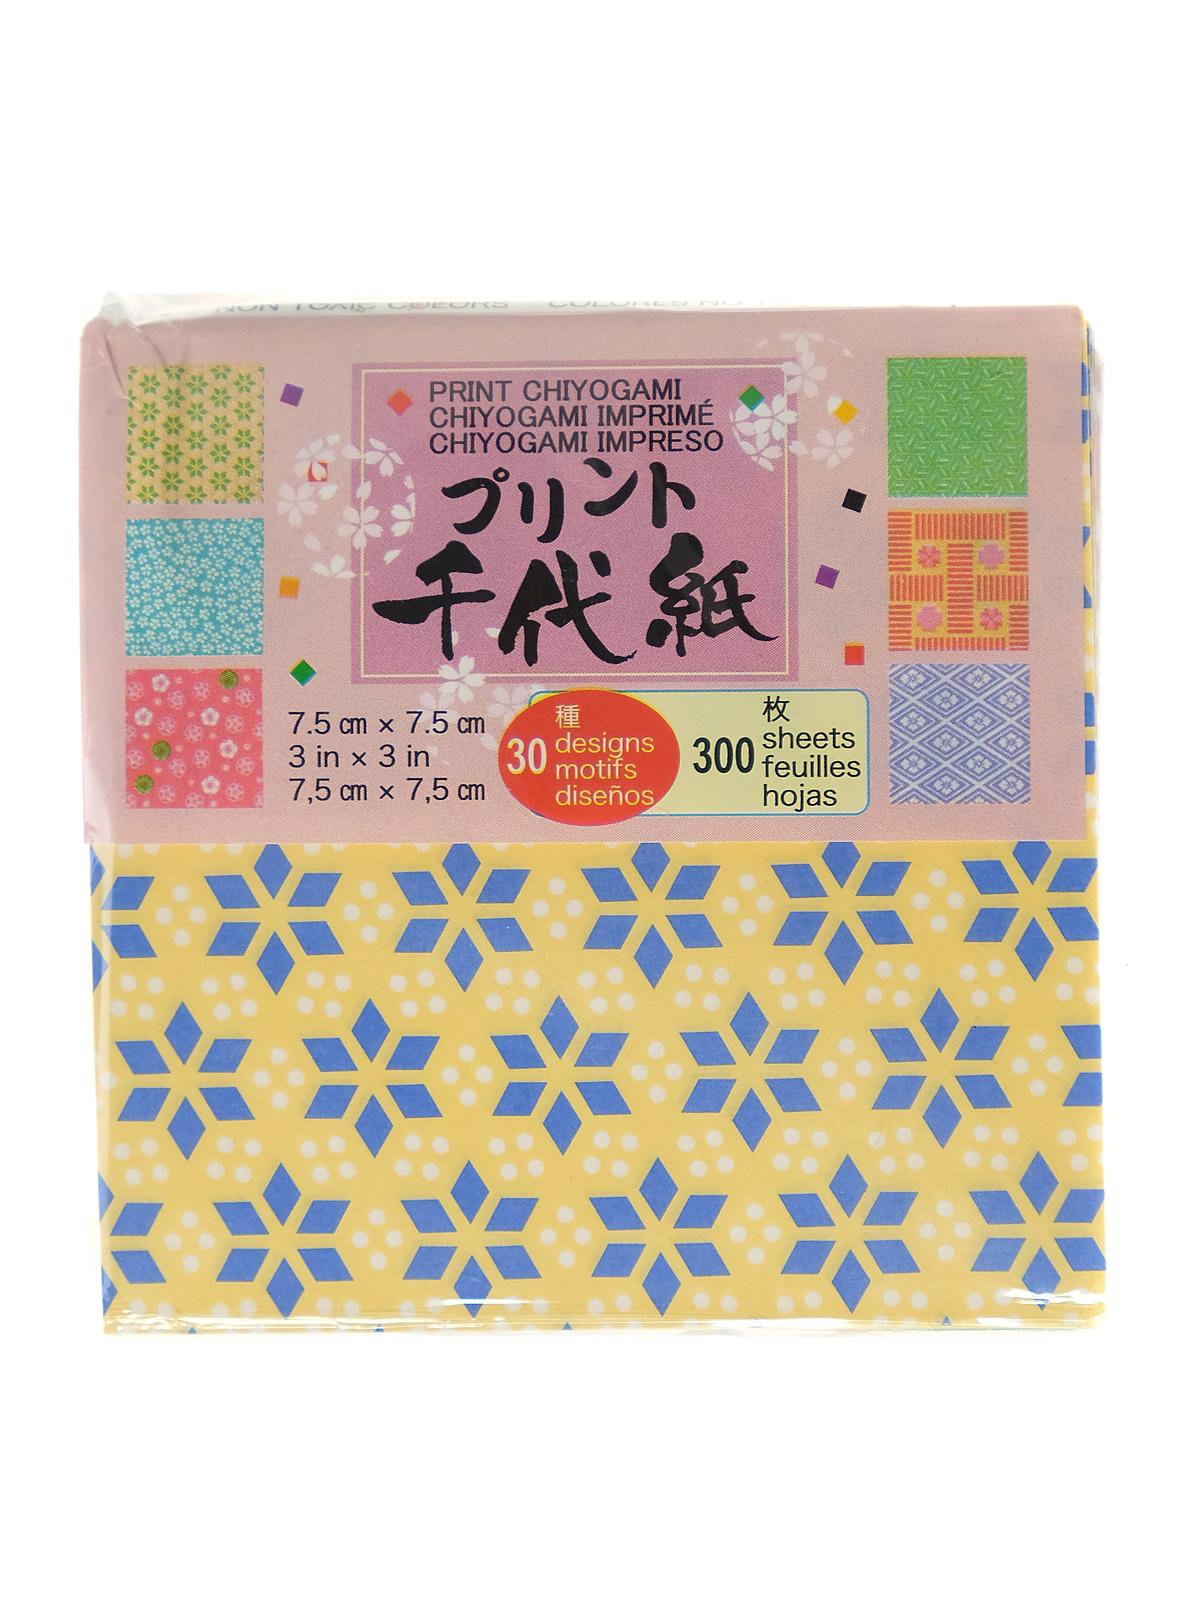 Origami Paper 3 In. X 3 In. Print Chiyogami 300 Sheets